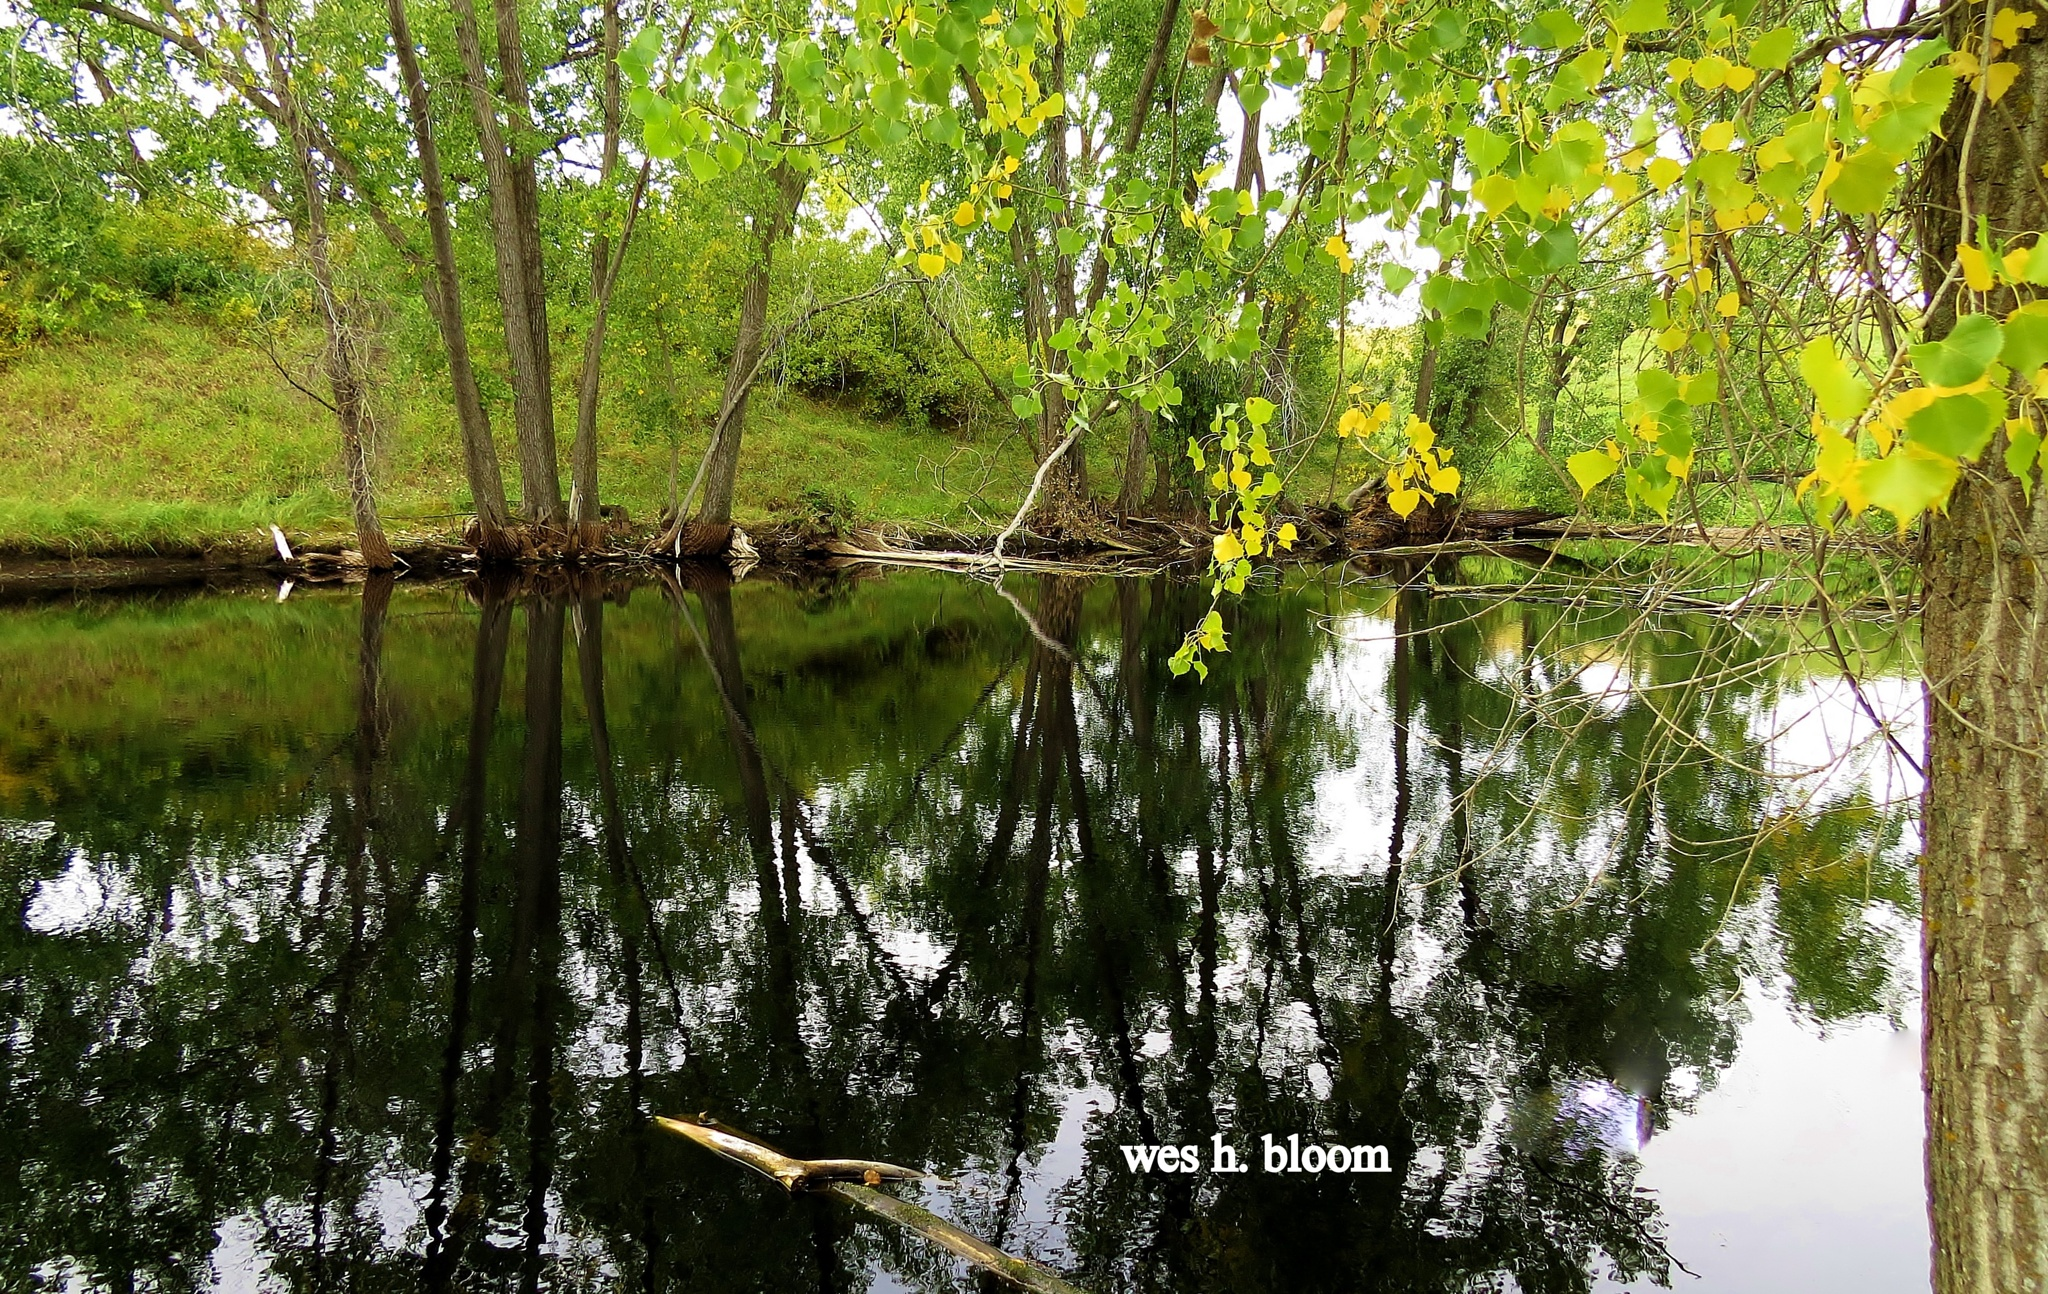 THE LITTLE POND by Wes Bloom